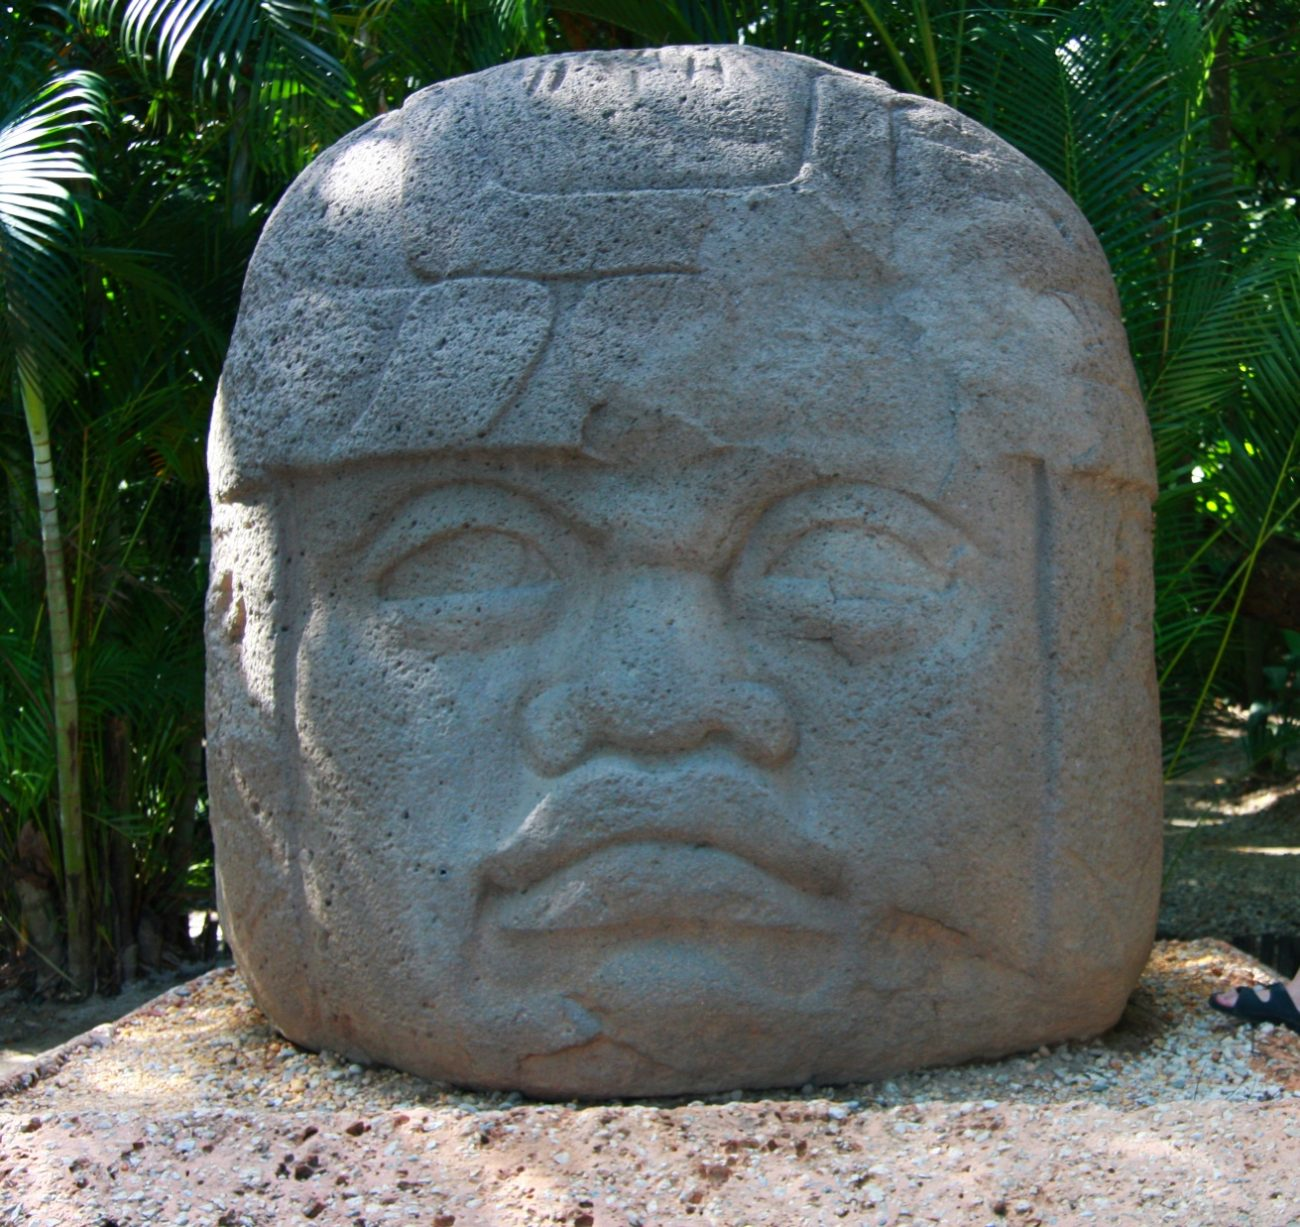 Head of Olmeca in Villhermosa Museum. Image Credit: Wikimedia Commons.